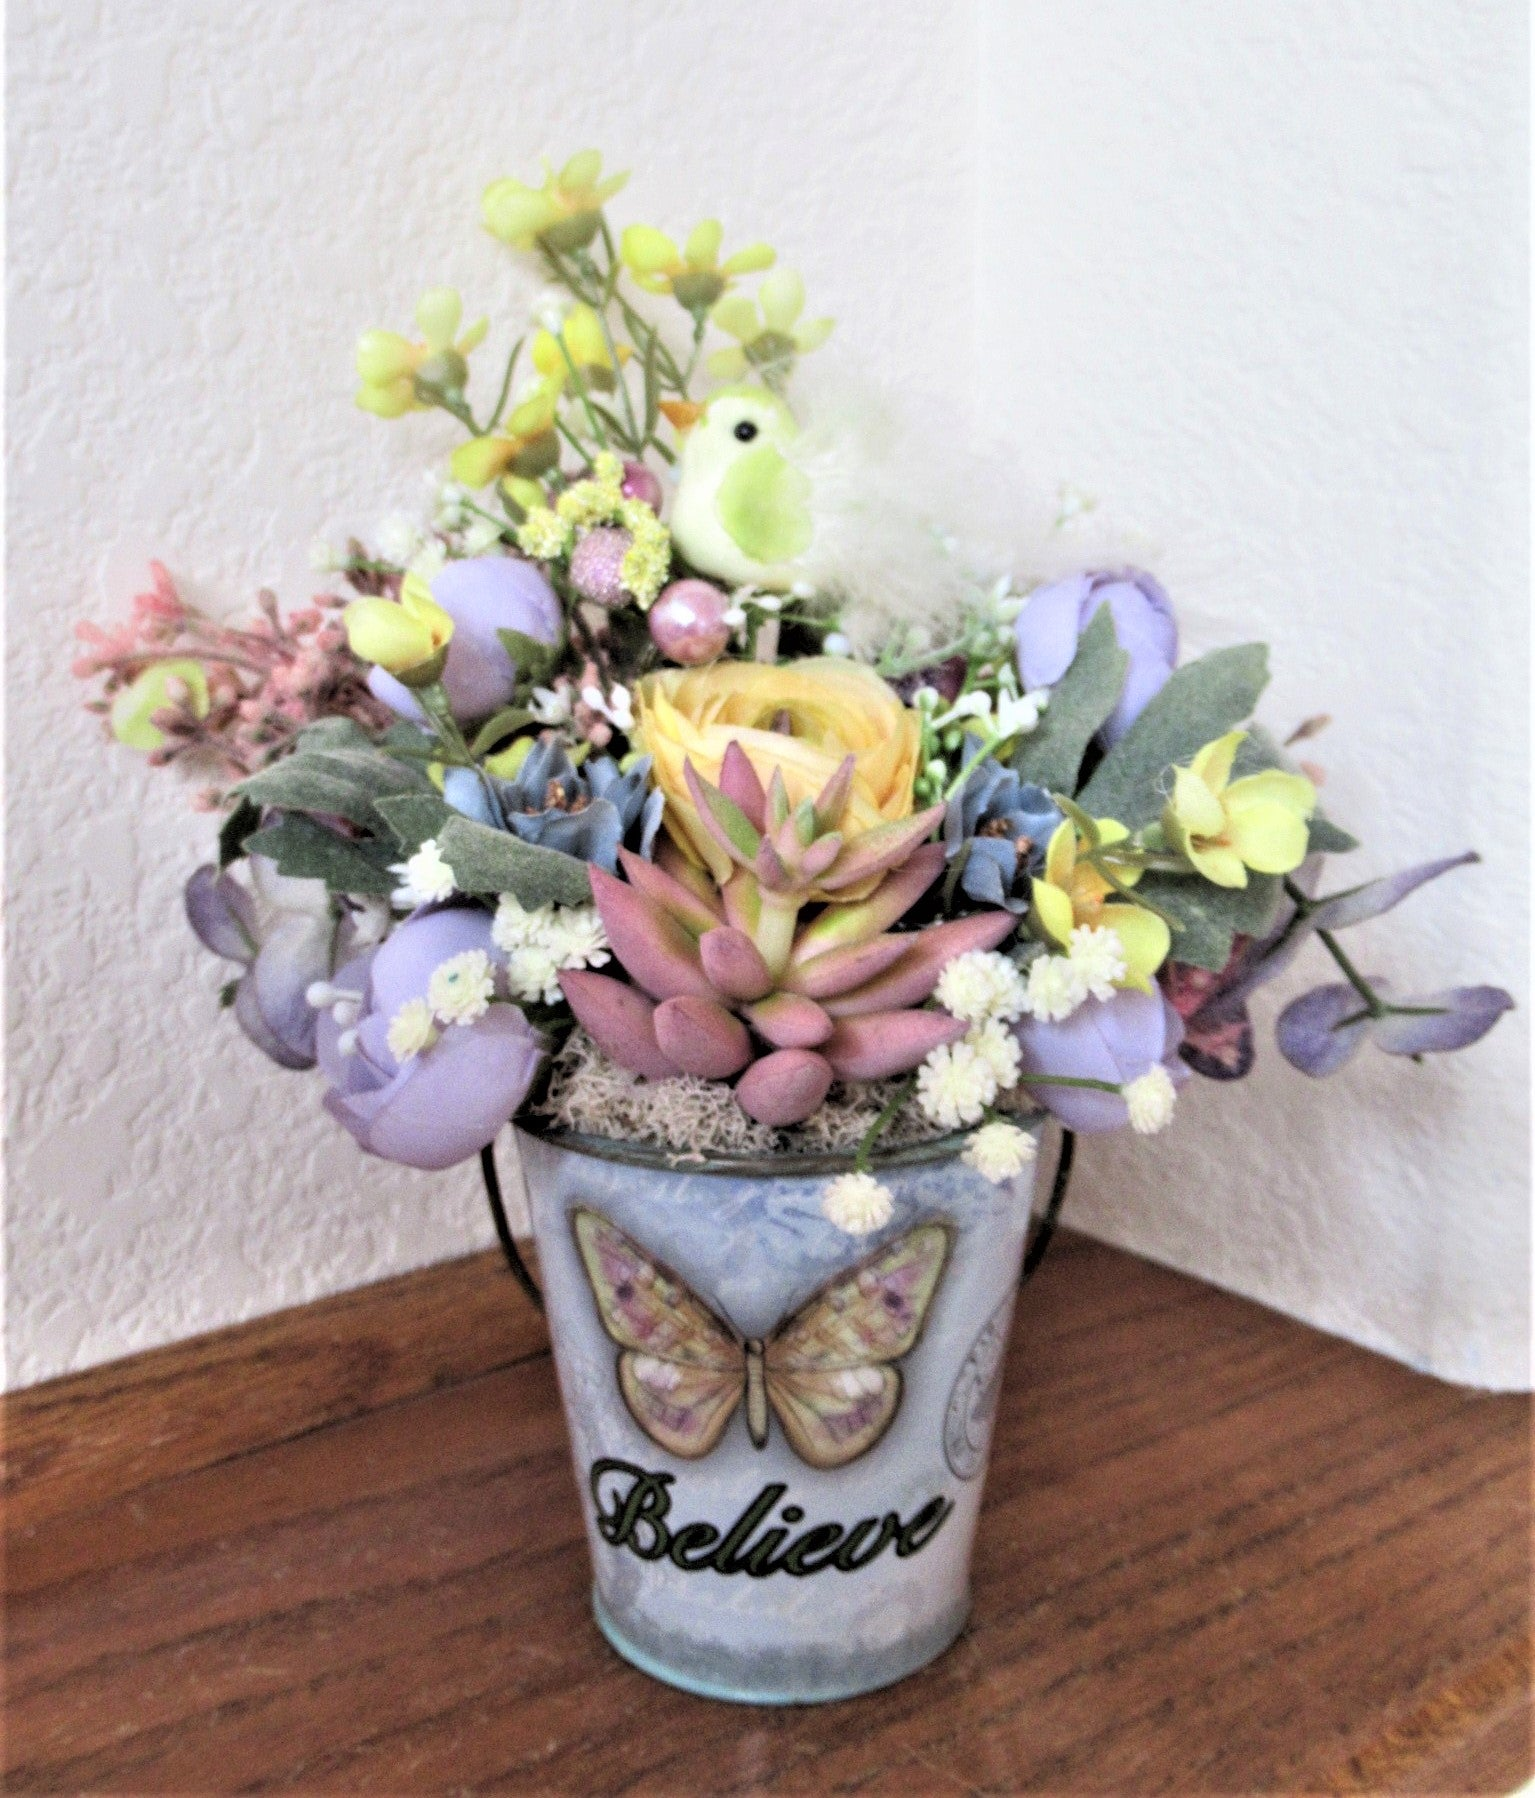 Believe Pastel Small Petite Pot Faux Flower and Succulent Arrangement - Odyssey Creations